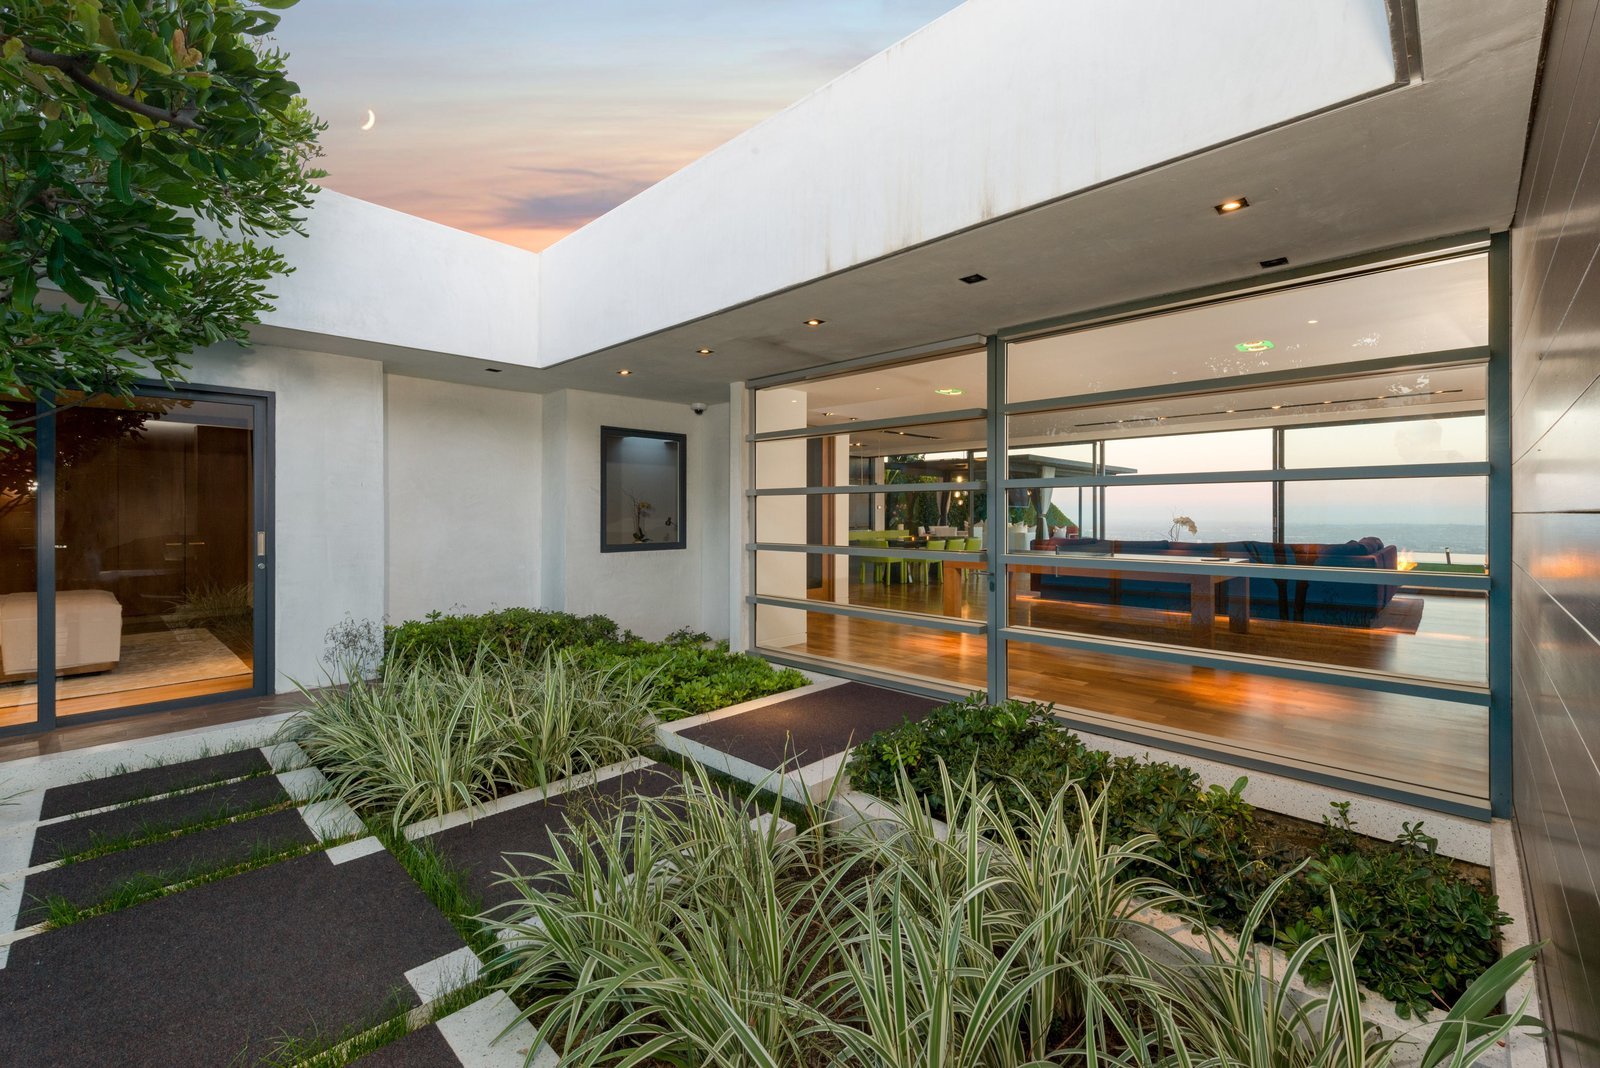 Tagged: Outdoor, Front Yard, Shrubs, Hardscapes, and Pavers Patio, Porch, Deck.  Hopen Place by Dwell from 'Friends' Star Matthew Perry's Midcentury Stunner in the Hollywood Hills Is For Sale